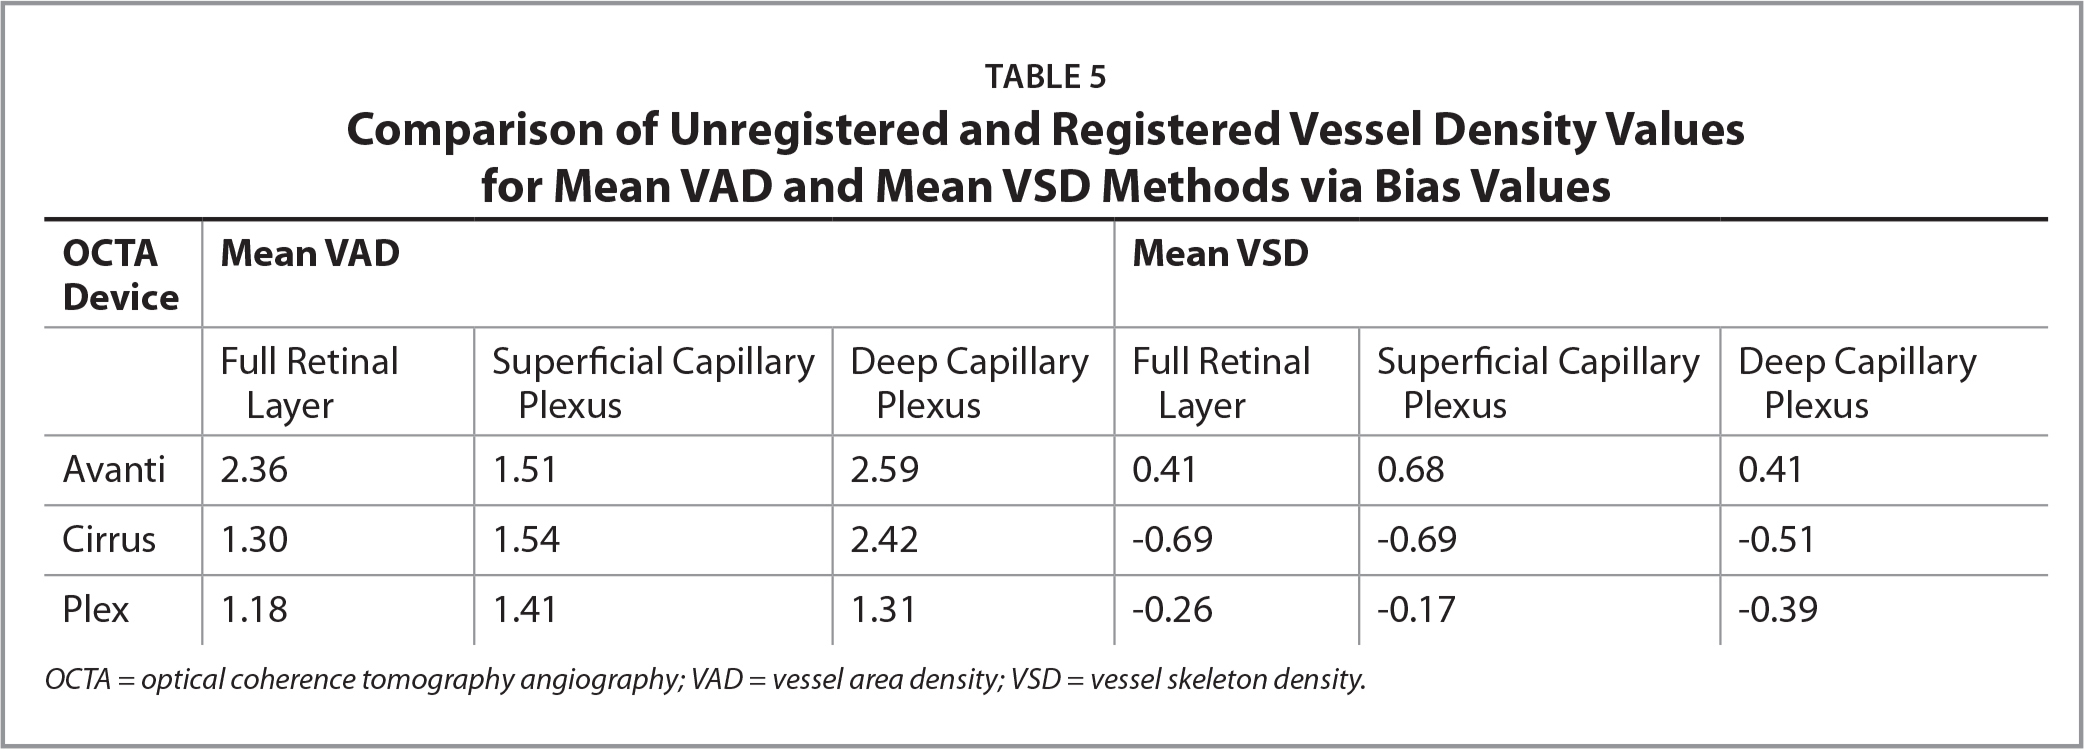 Comparison of Unregistered and Registered Vessel Density Values for Mean VAD and Mean VSD Methods via Bias Values